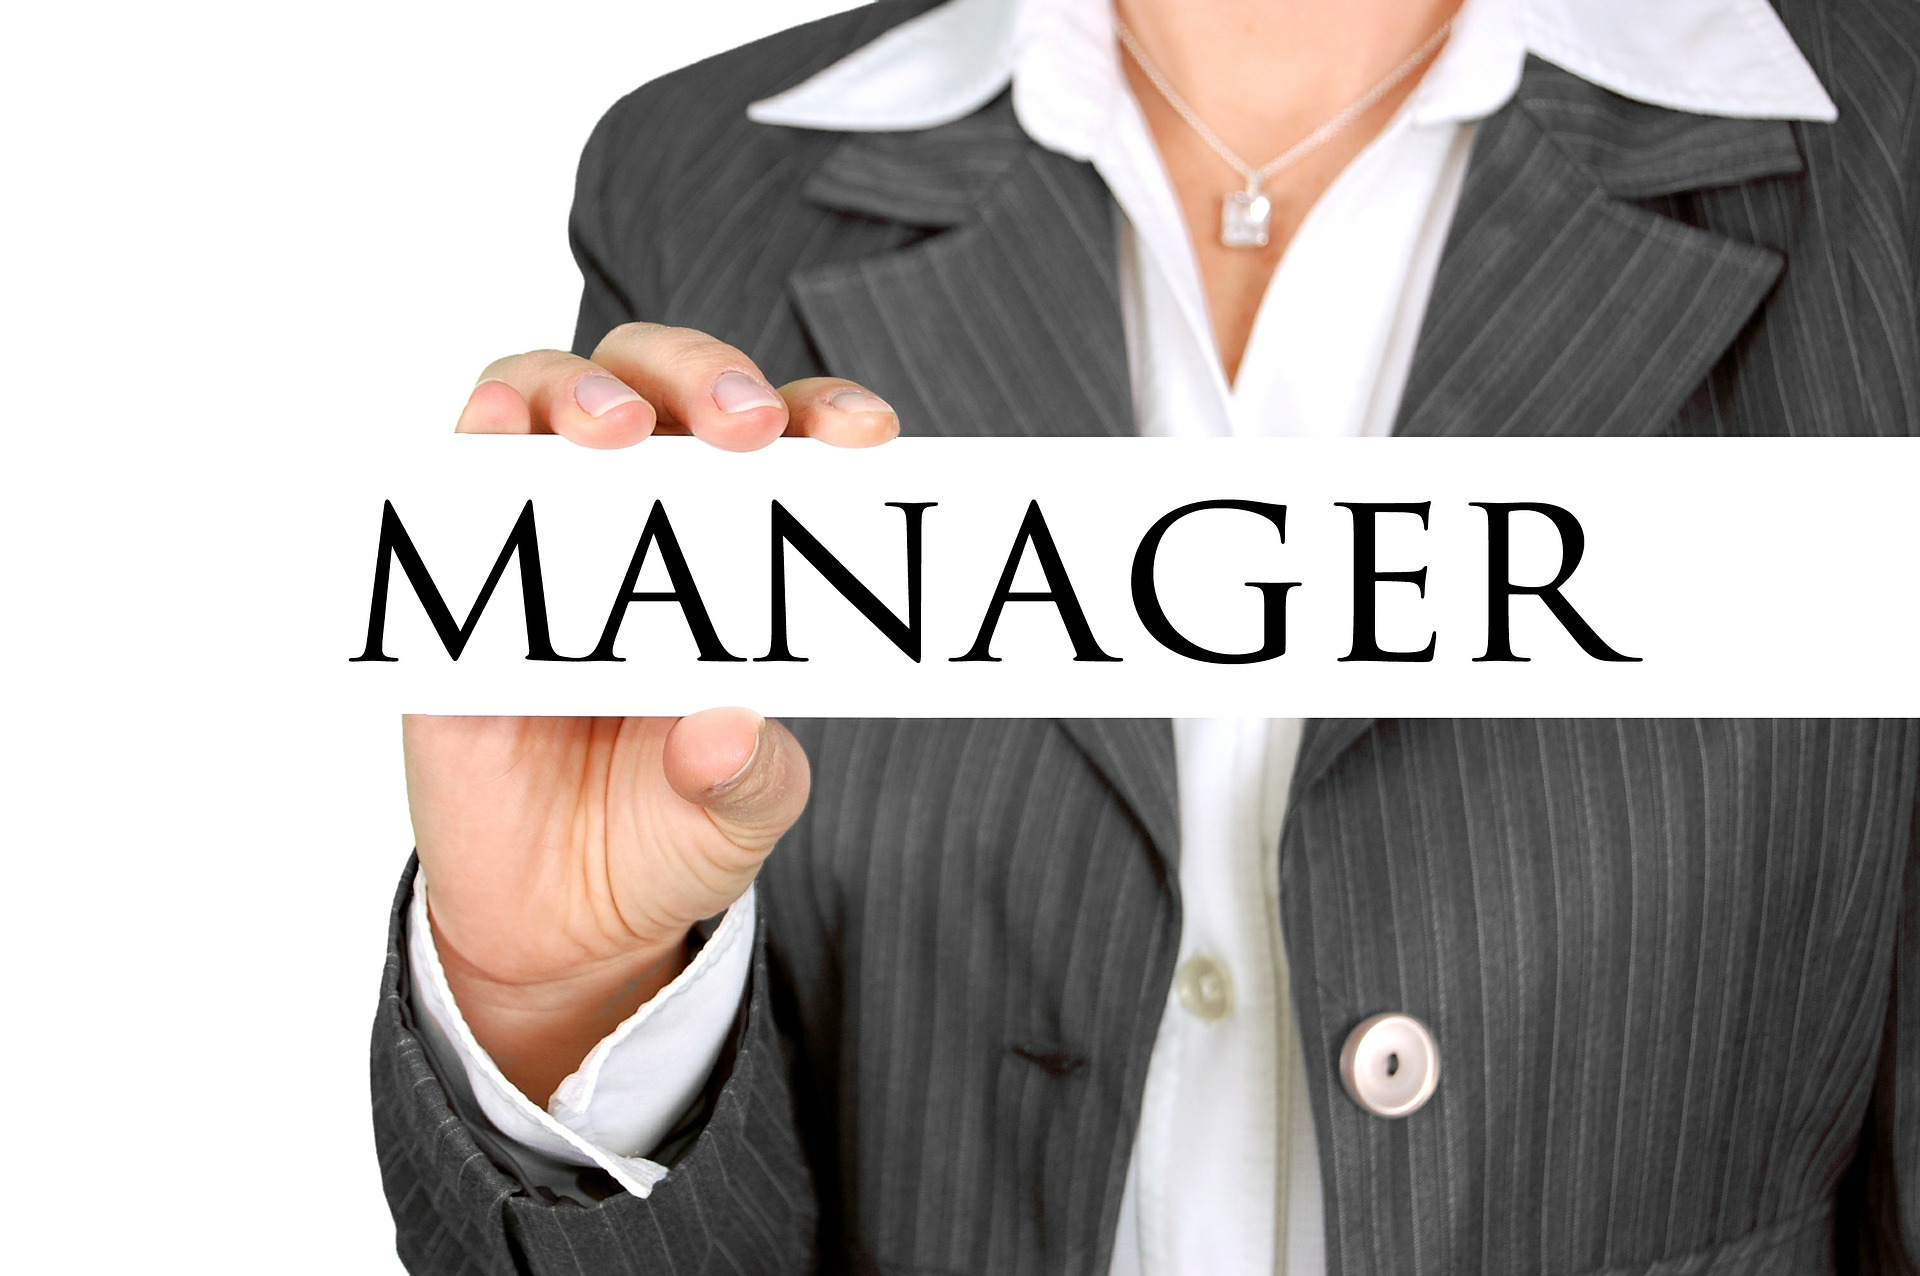 manager-454866_1920